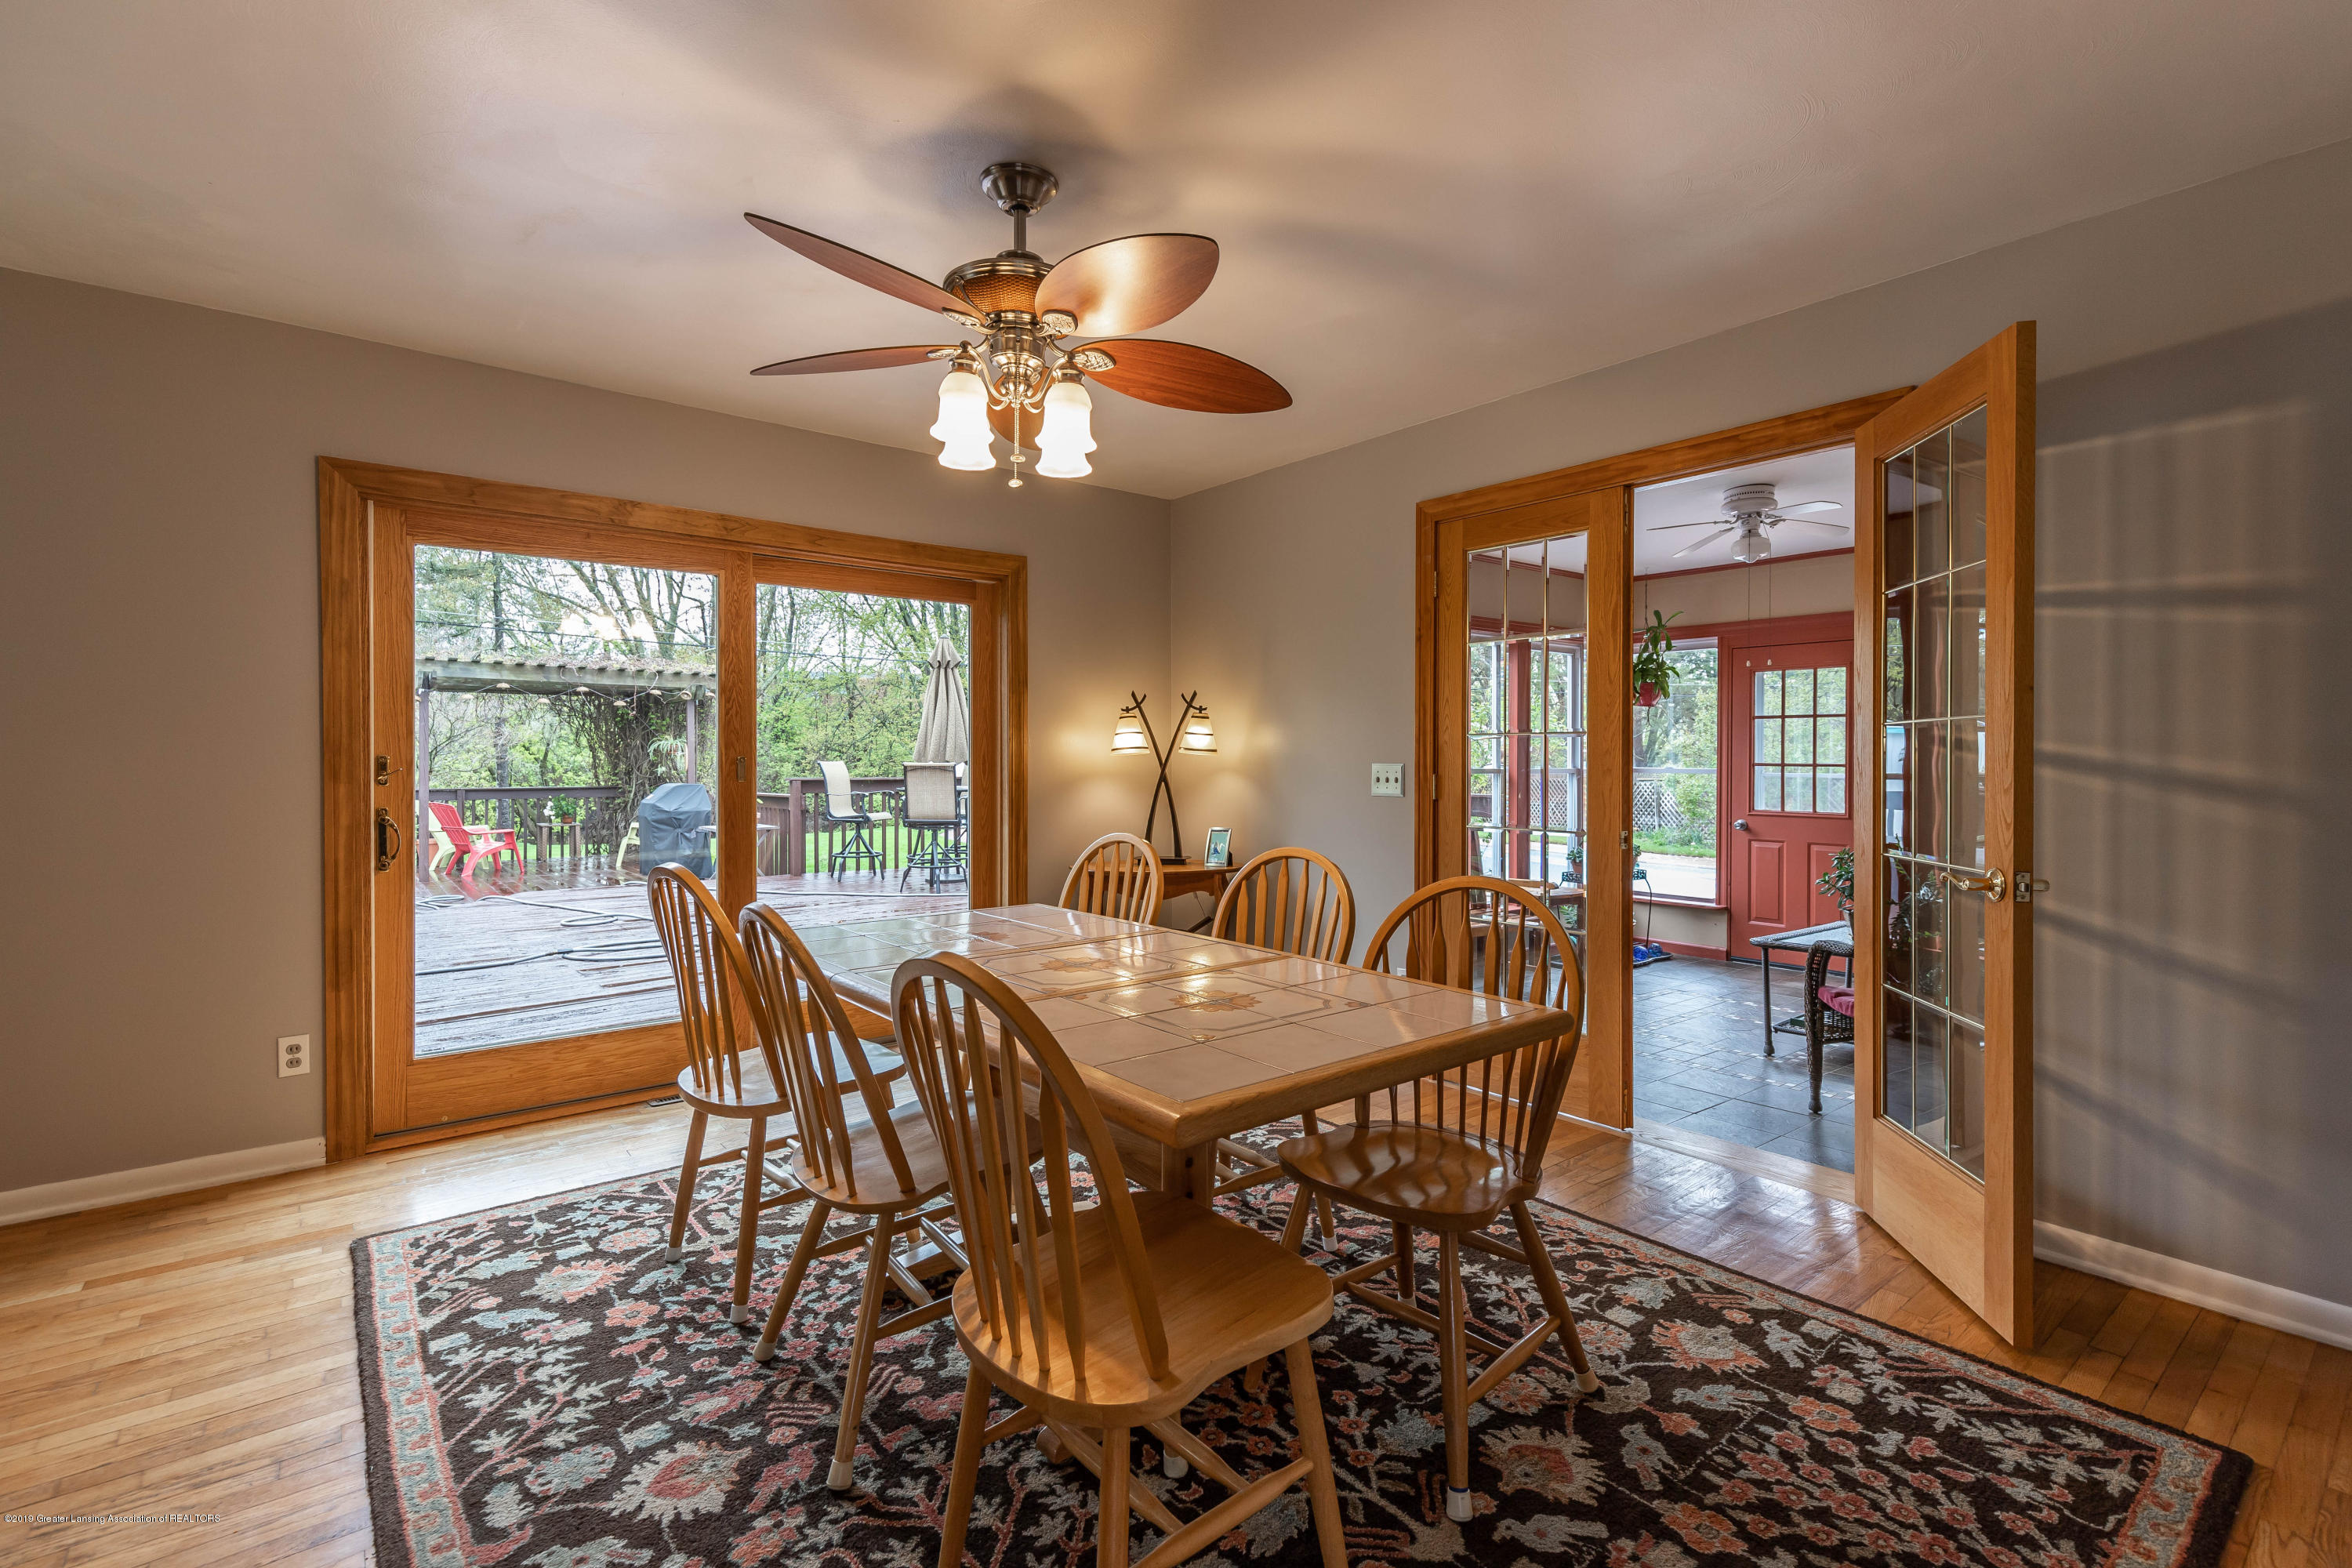 2170 Lagoon Dr - Dining area - 11